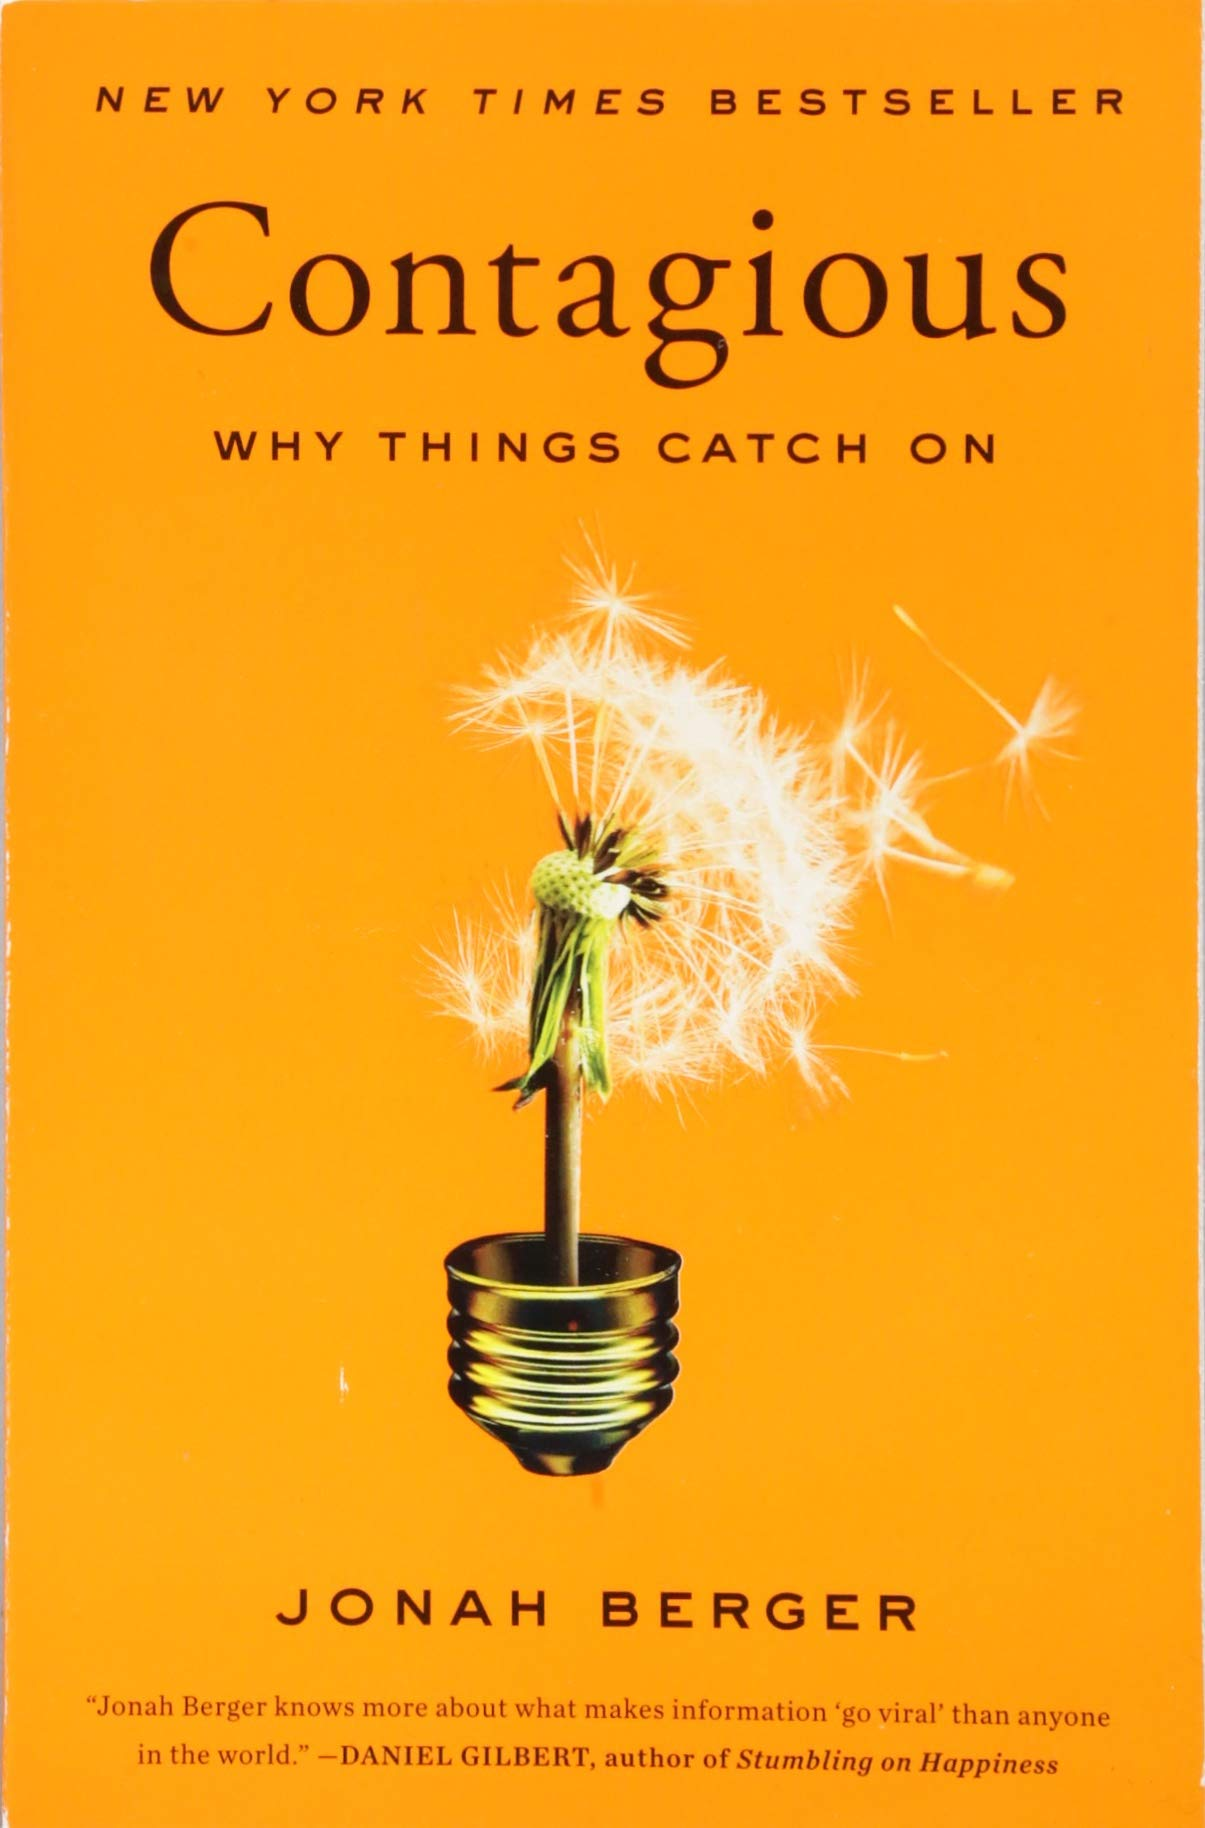 Why Things Catch On